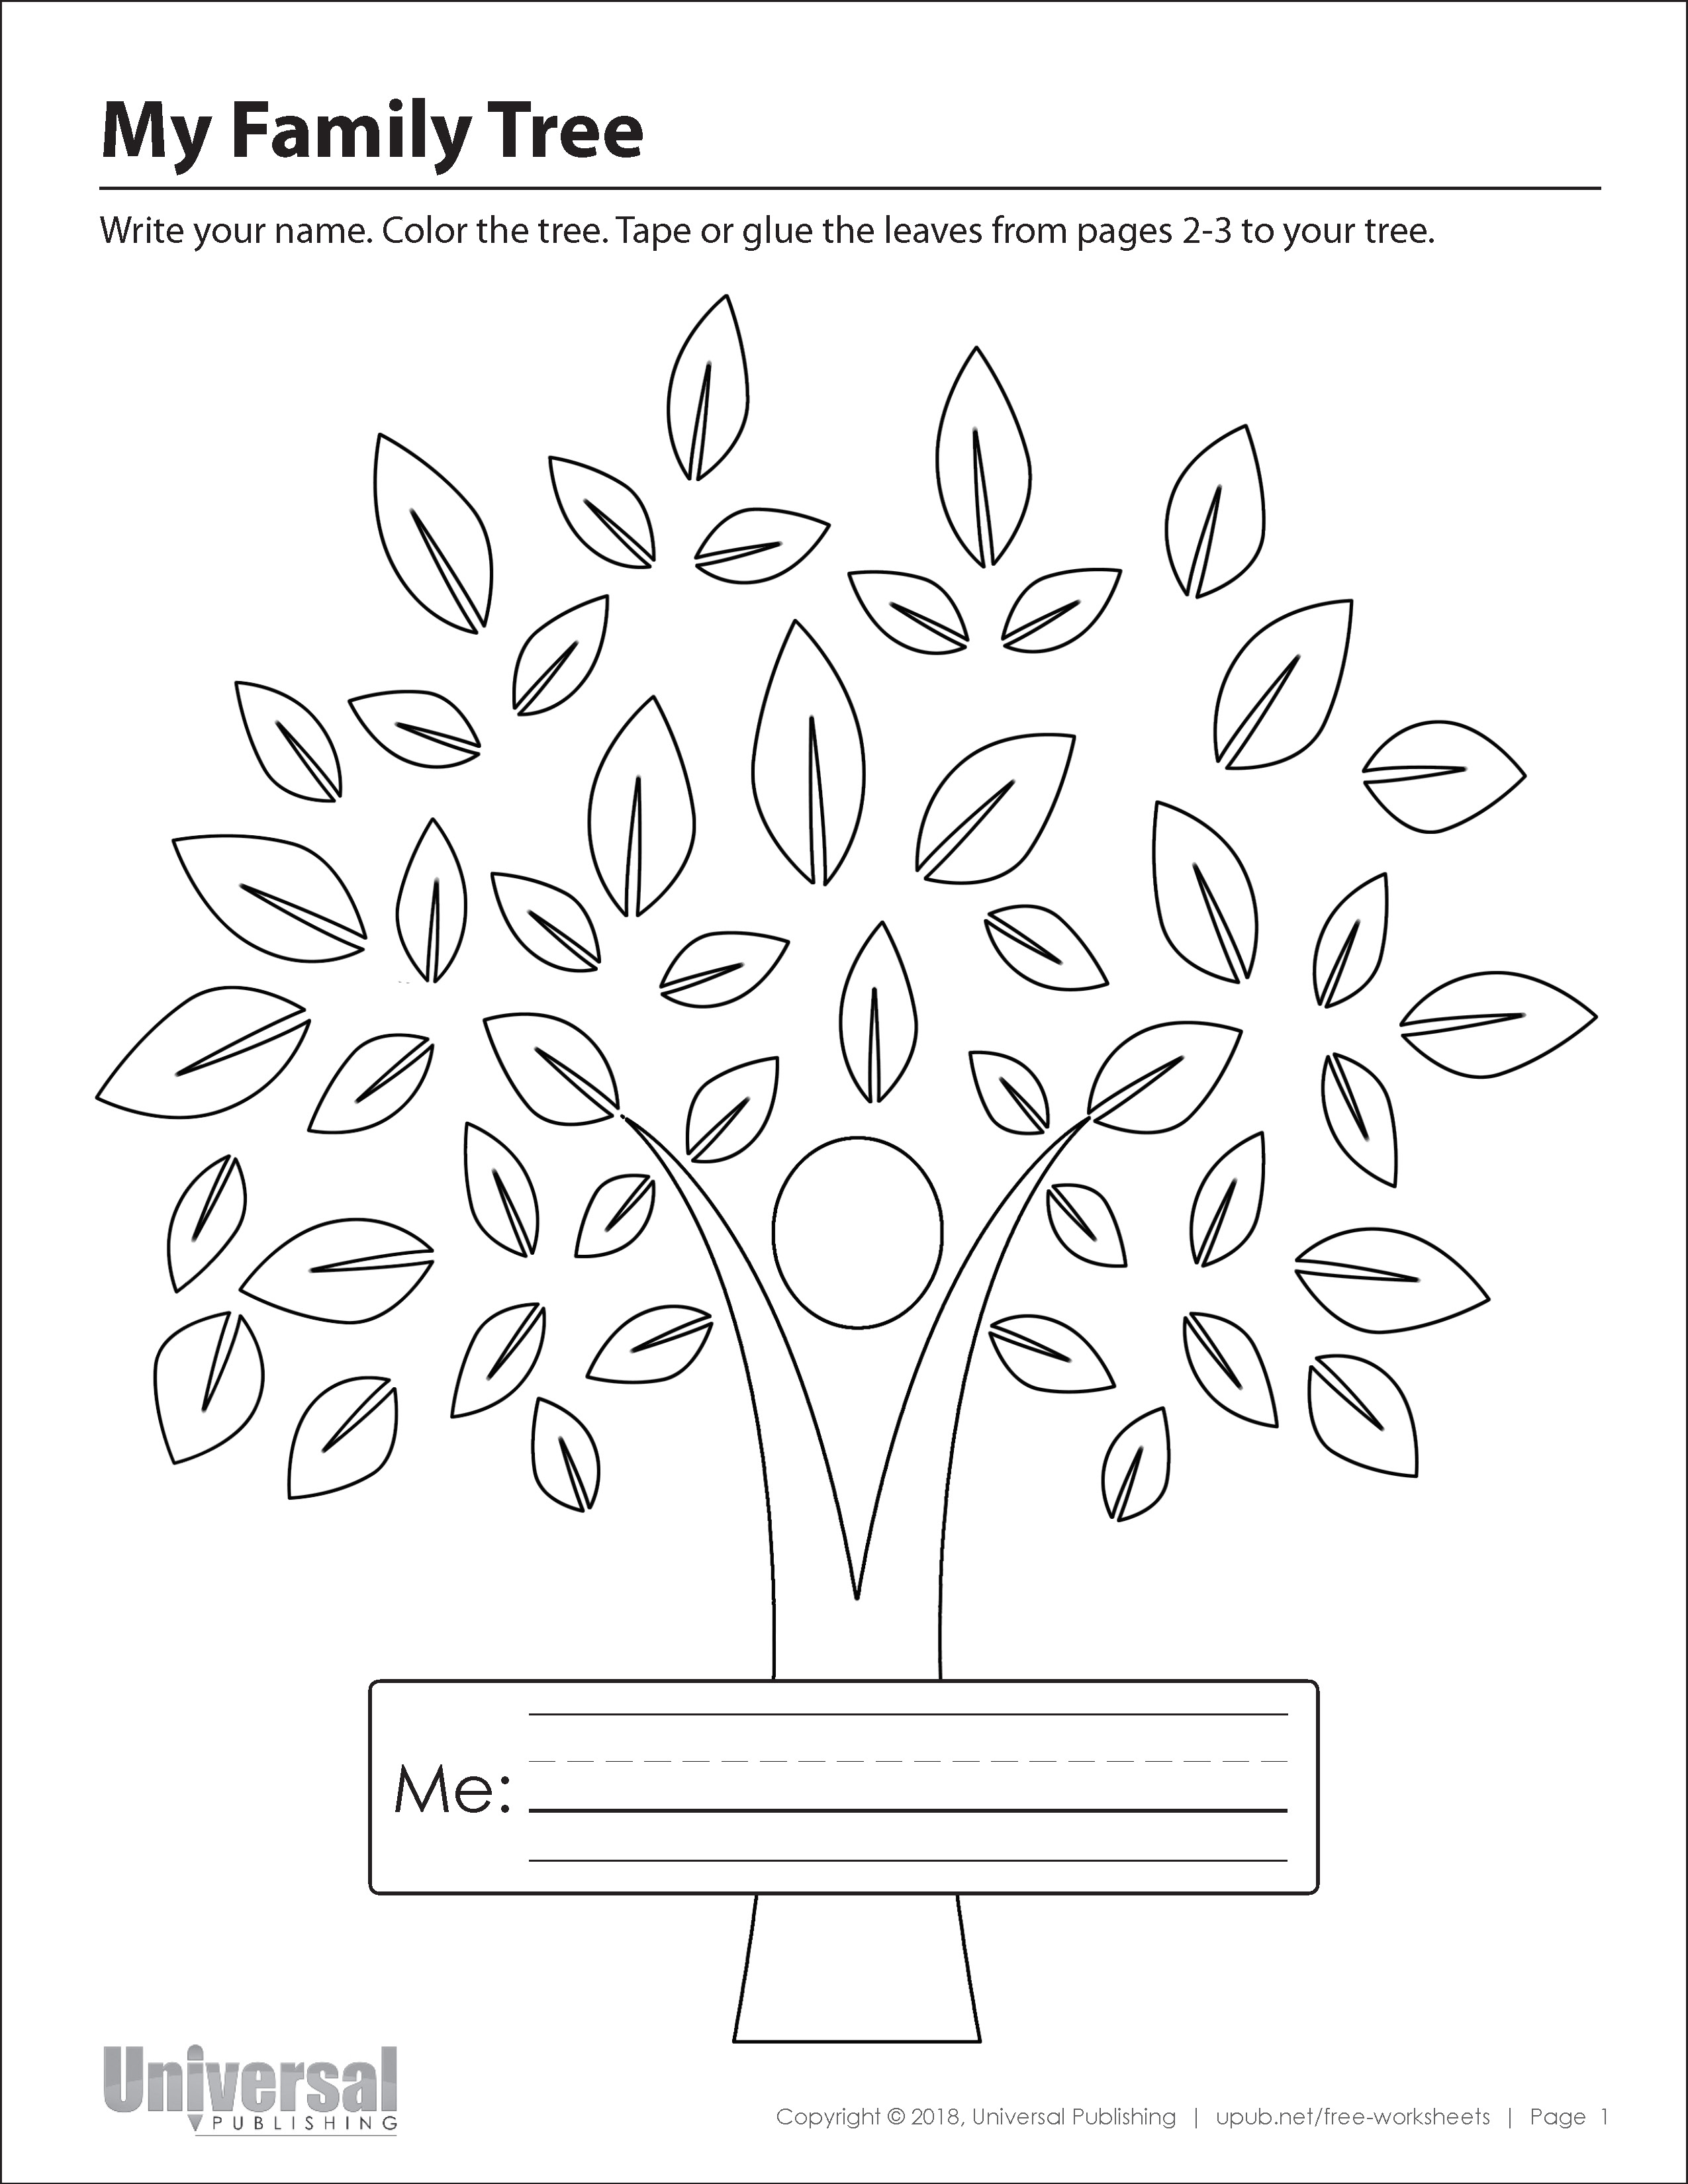 My Family Tree Free Printables